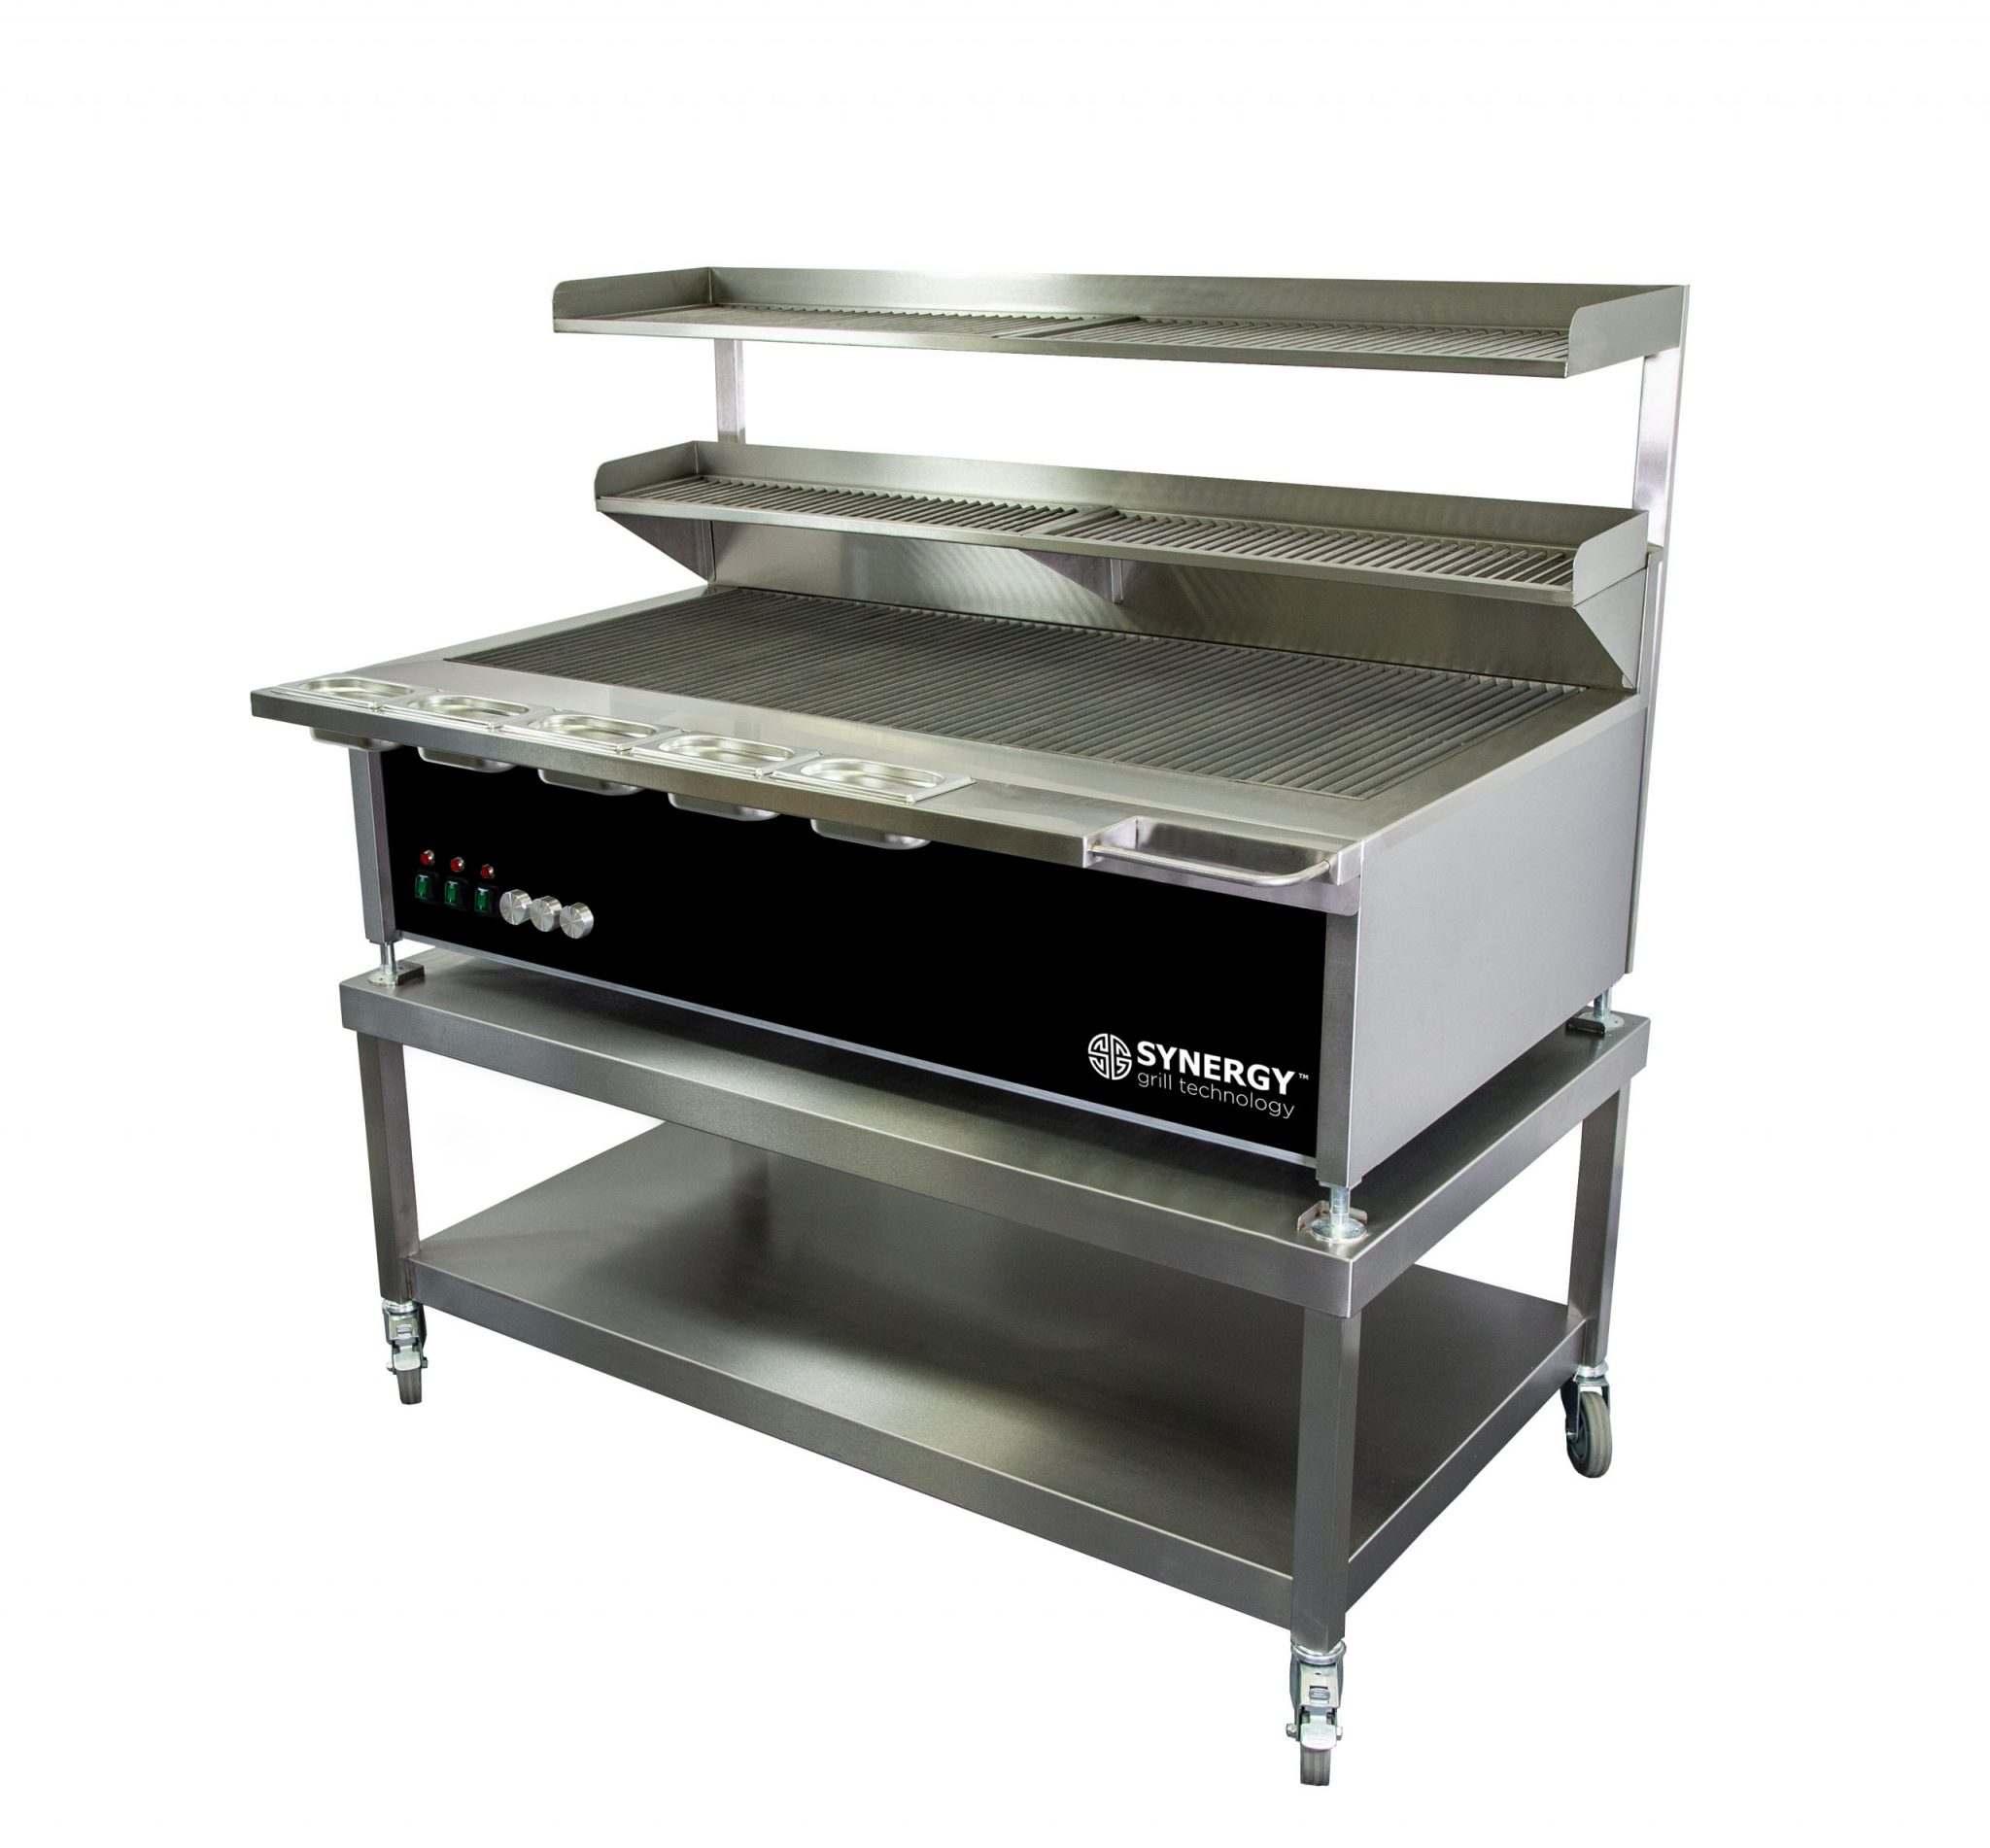 Synergy Grill Trilogy ST1300 Black with Mobile Table